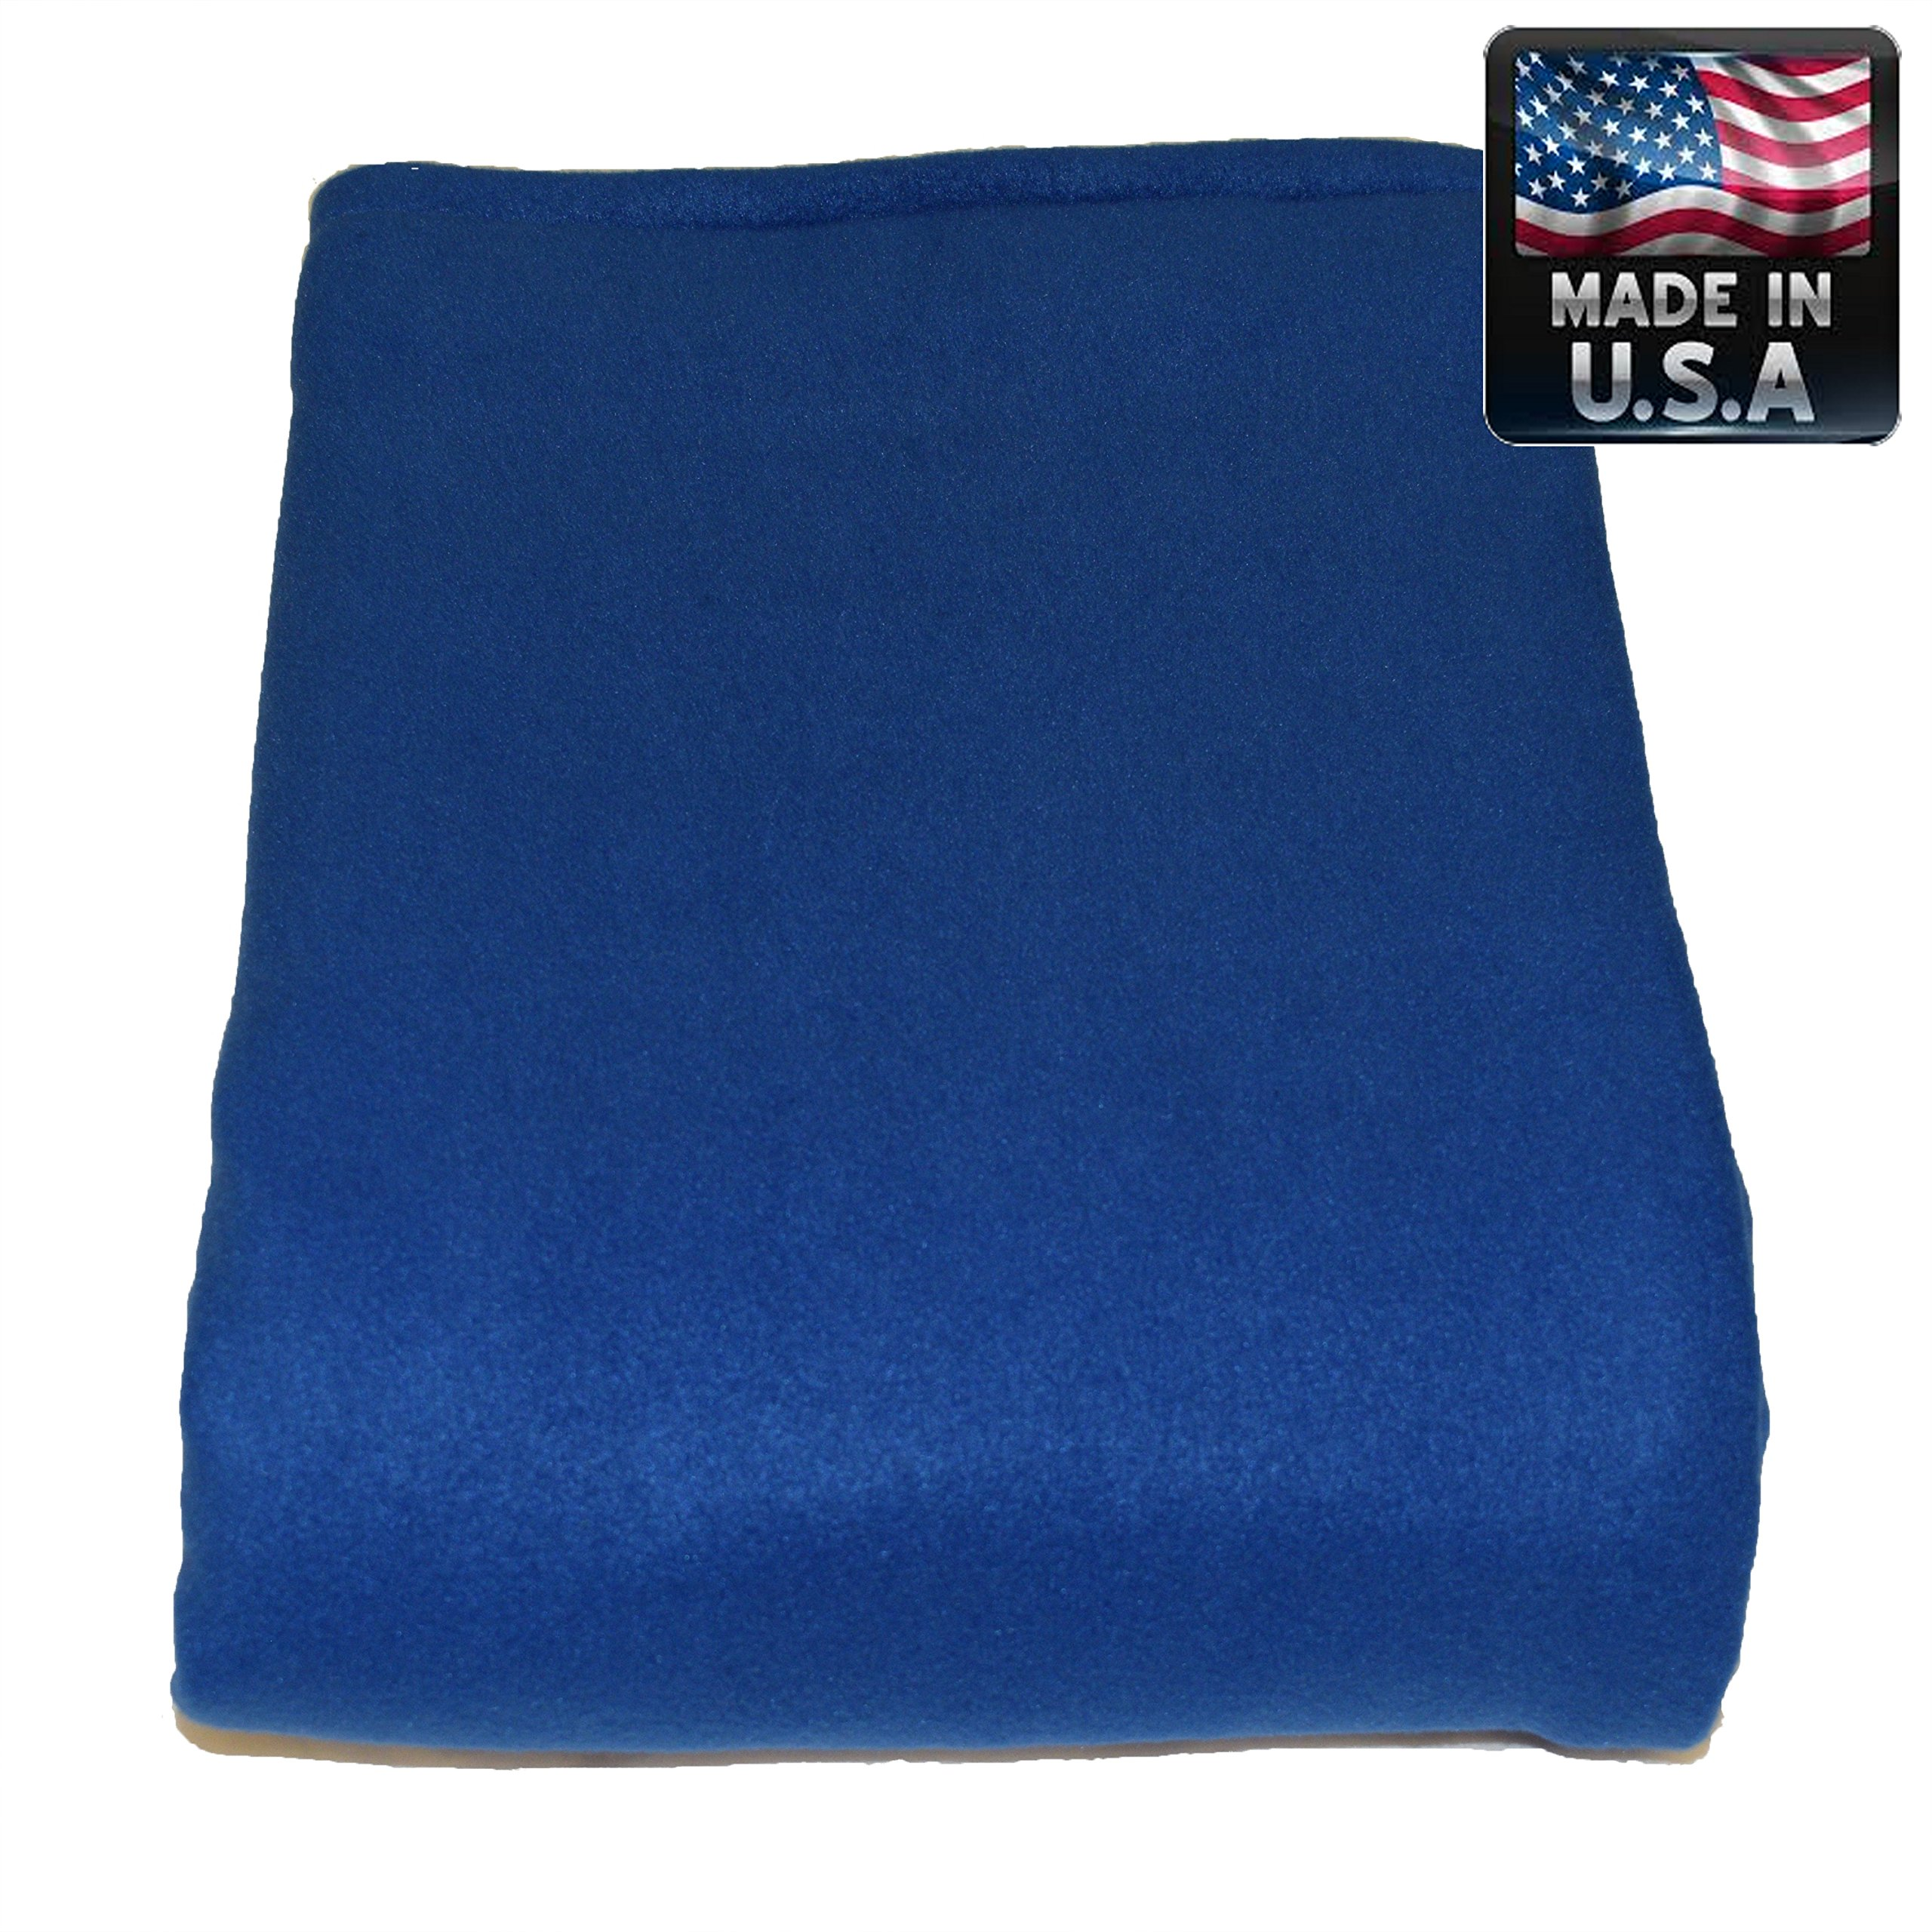 Melissa's Weighted Blankets 21lbs Adult Size Blue Great for Insomnia, Anxiety relief, Autism, Aspergers, SPD, ADHD, and PTSD. Overall stress reliever! Extra Large 80x58'' size